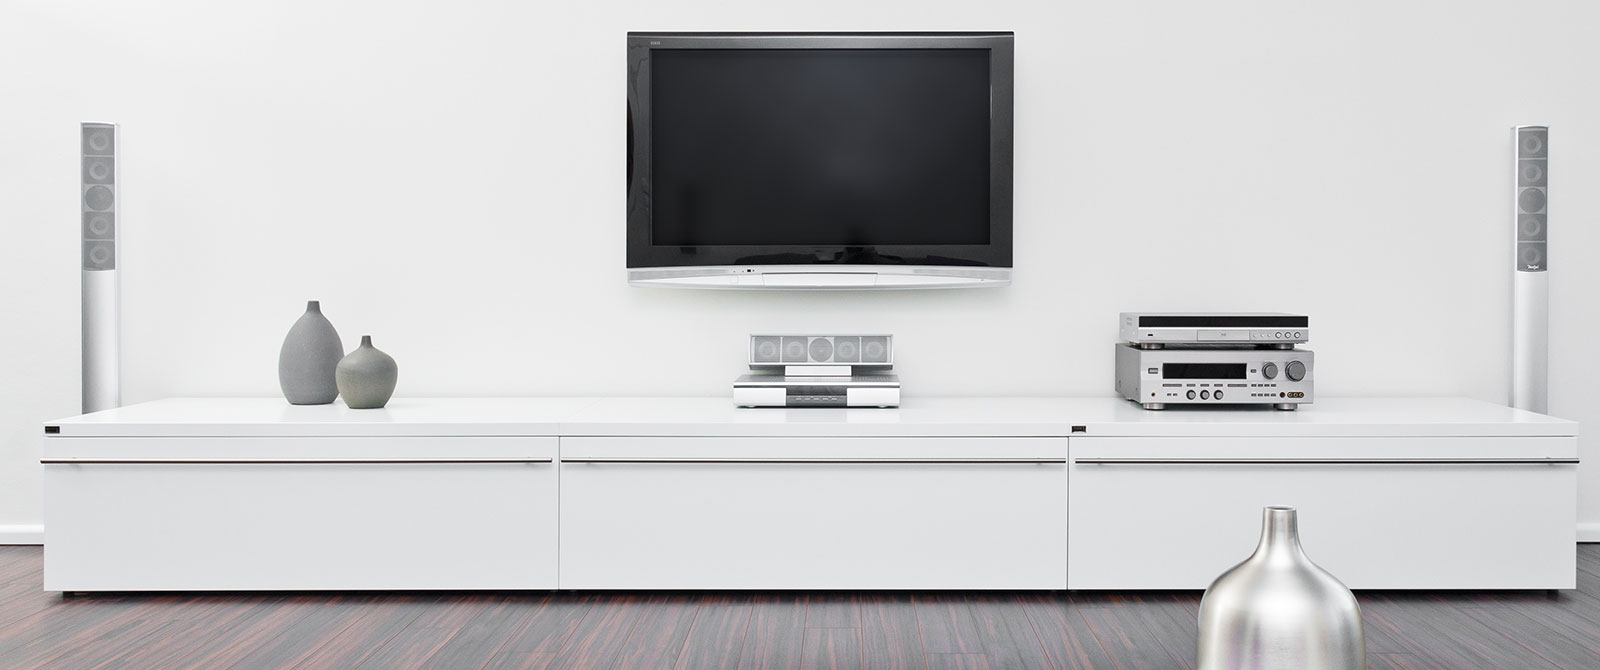 Living Room Audio System| Wireless Home Audio Systems| Living Room ...